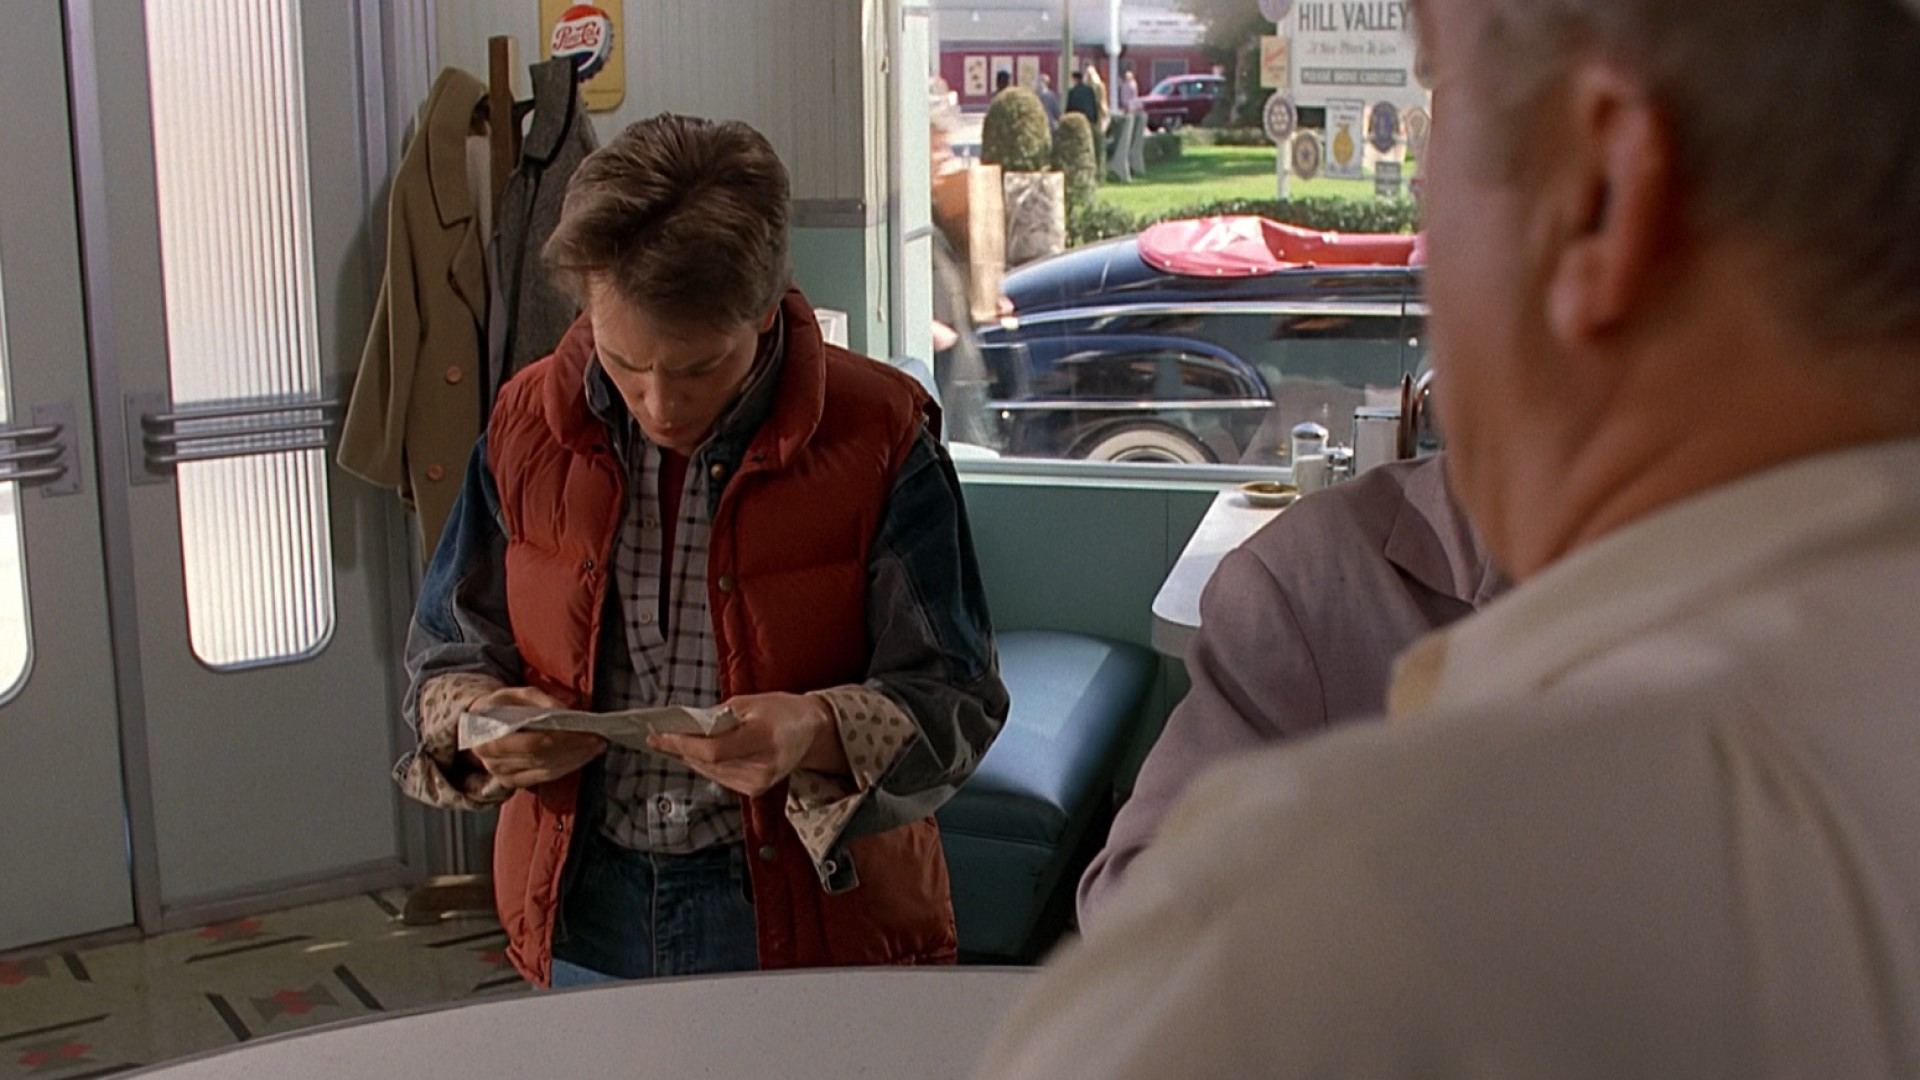 BACK TO THE FUTURE (1985) - Torn Phone Book Page - Image 8 of 8